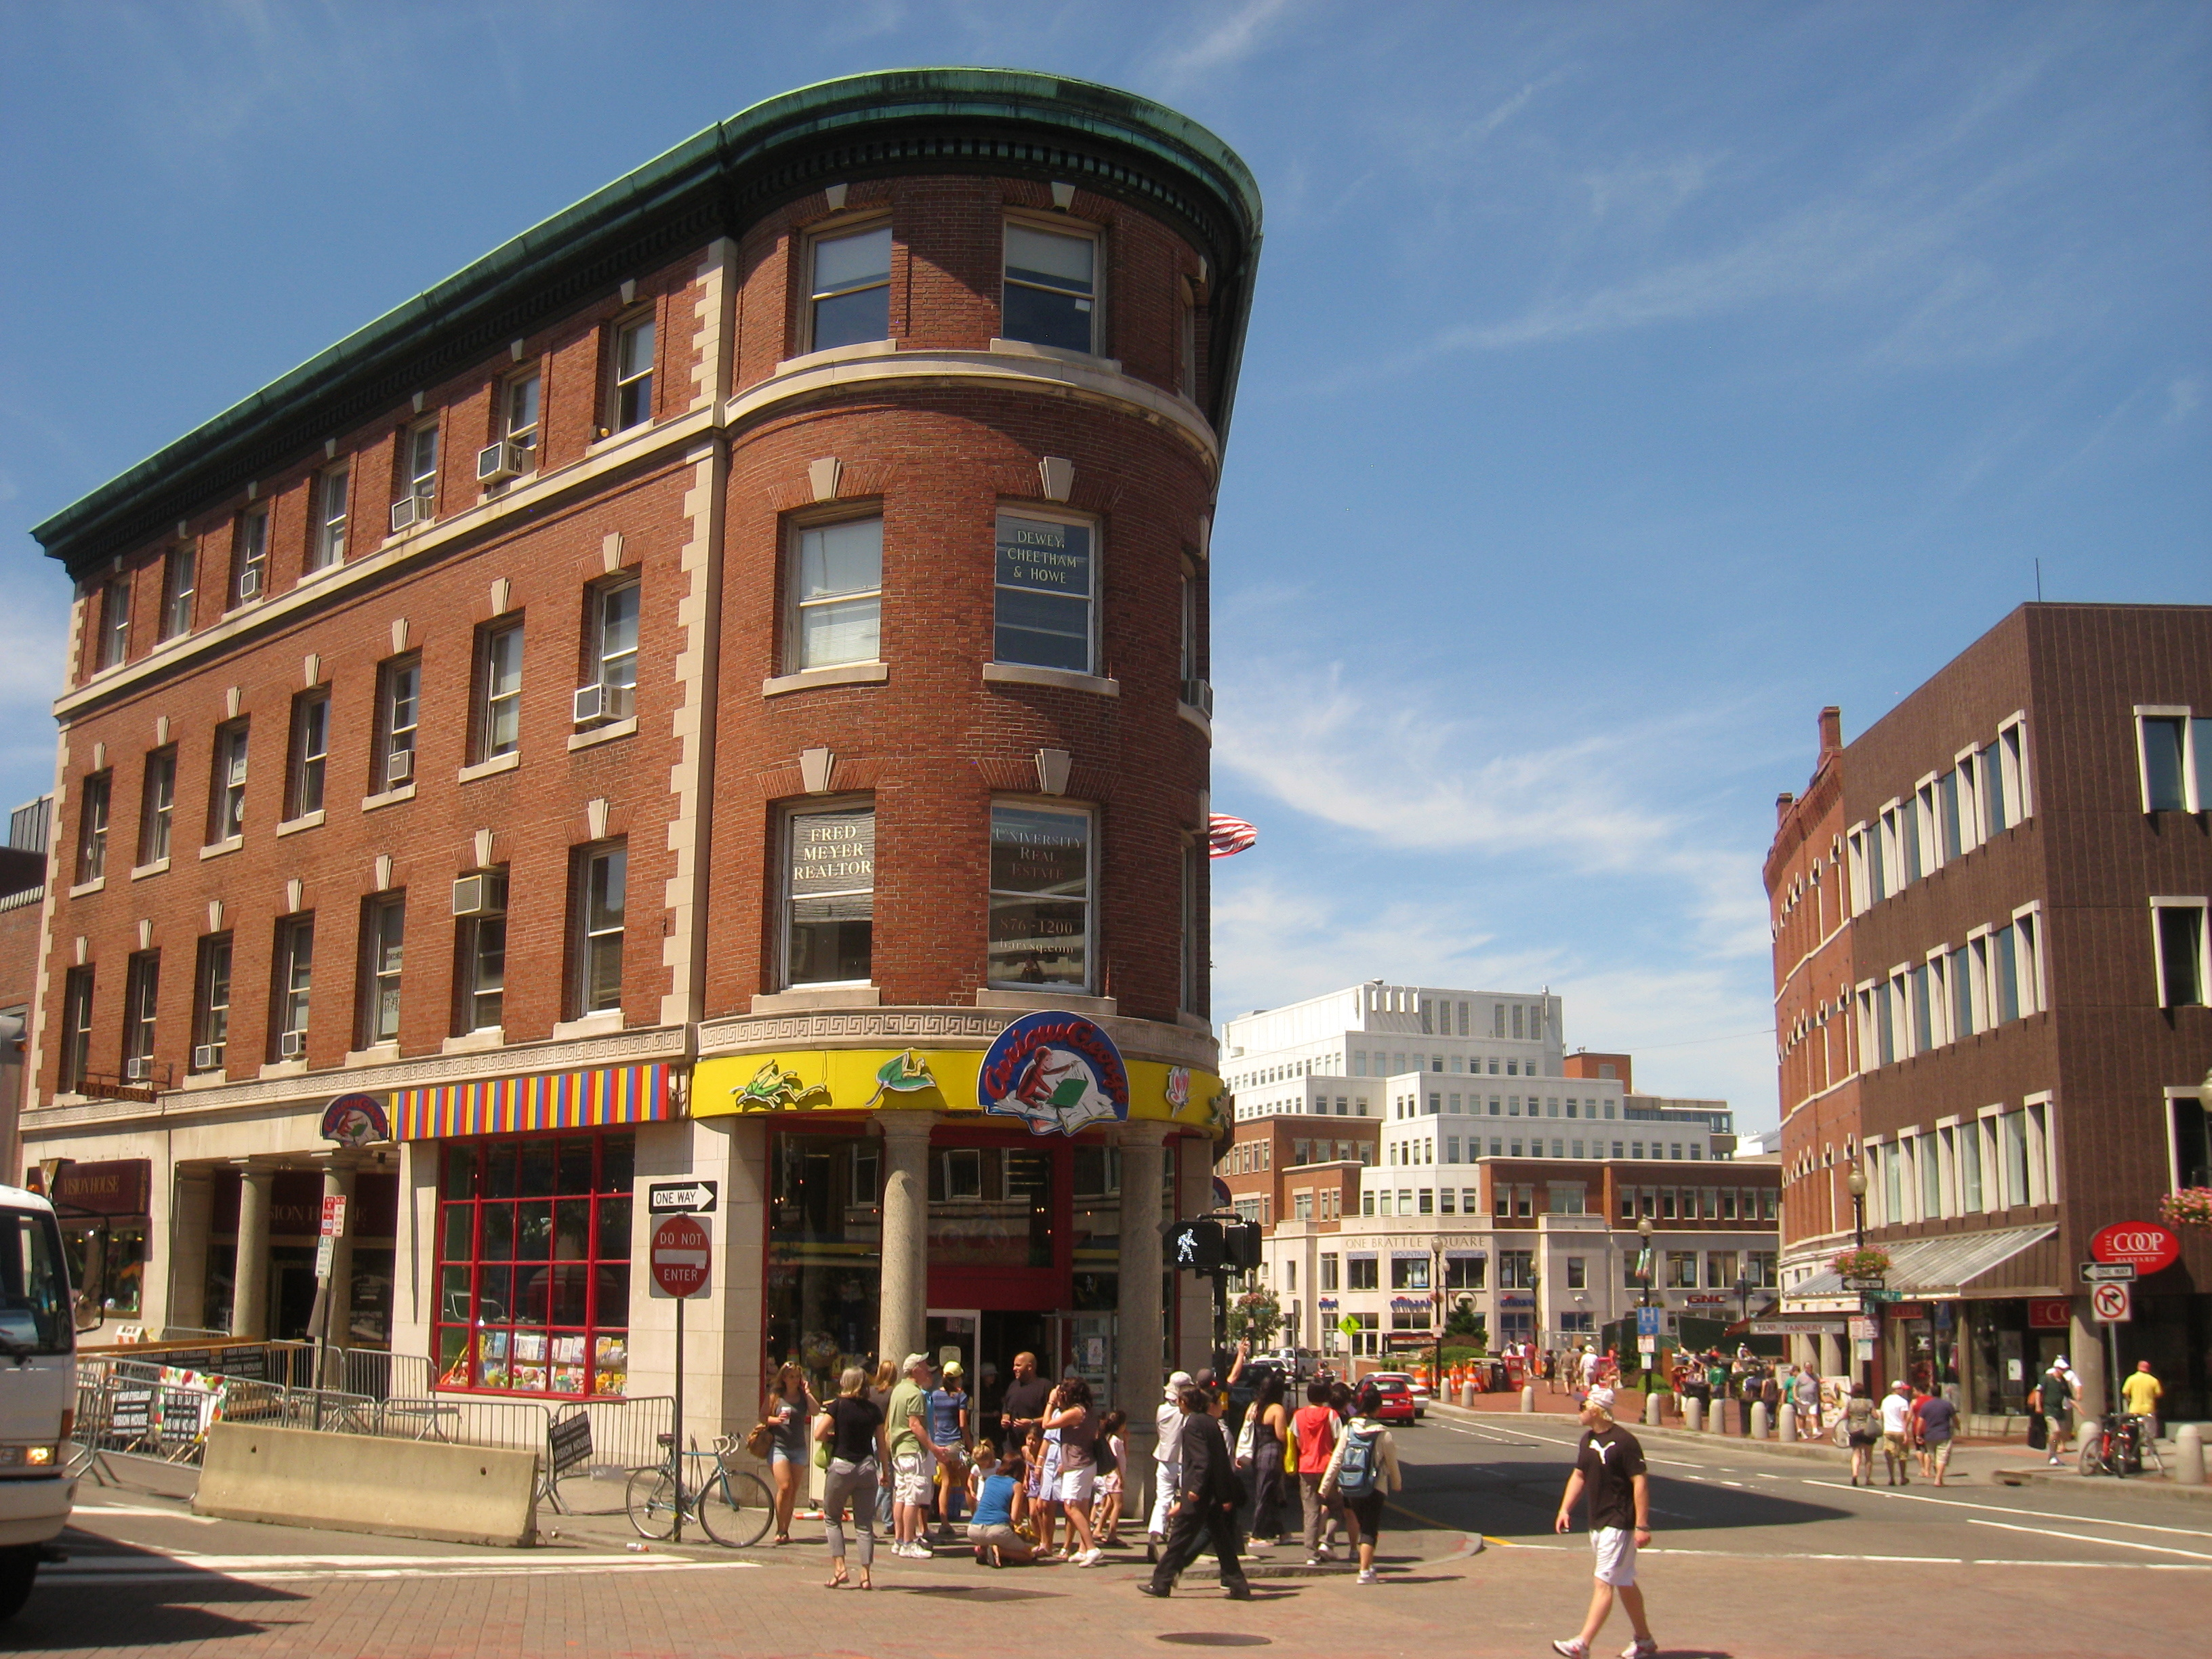 Apartments for Rent in Harvard Square, Cambridge, MA Located in the historic heart of Cambridge, Harvard Square has served the community as a revered gathering place since Residents and visitors alike flock to Harvard Square to peruse the many bookstores, coffee houses, art theaters, fine restaurants, and eclectic shops.